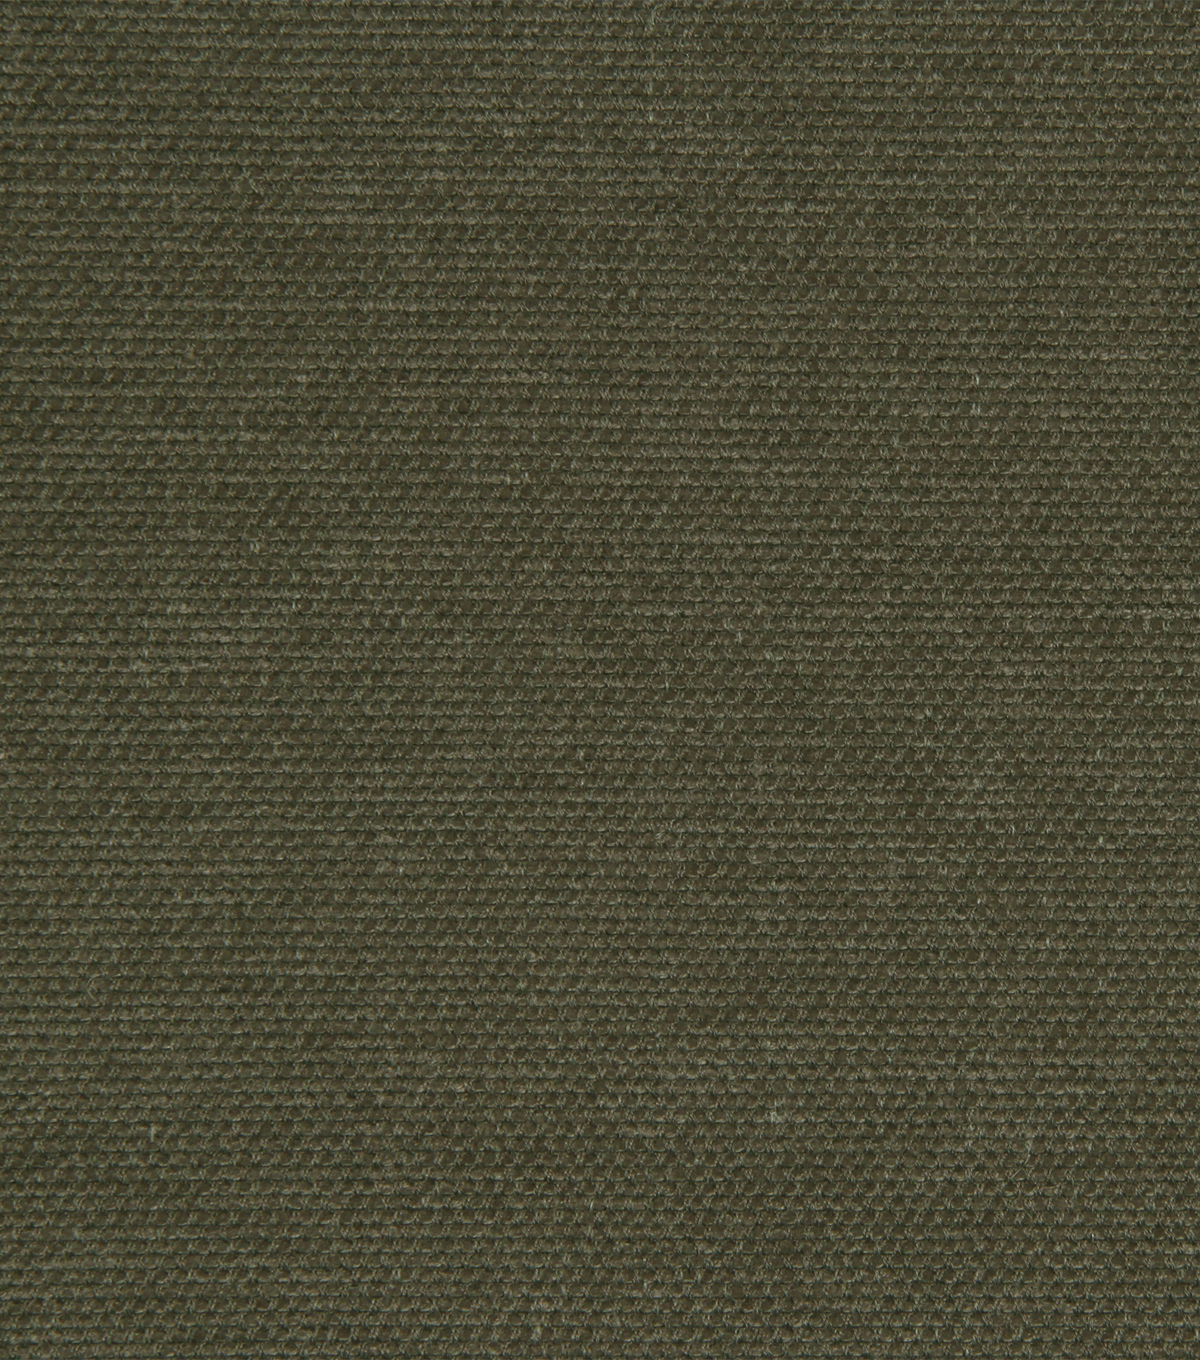 Home Decor 8\u0022x8\u0022 Fabric Swatch-Robert Allen Heathertex Jute